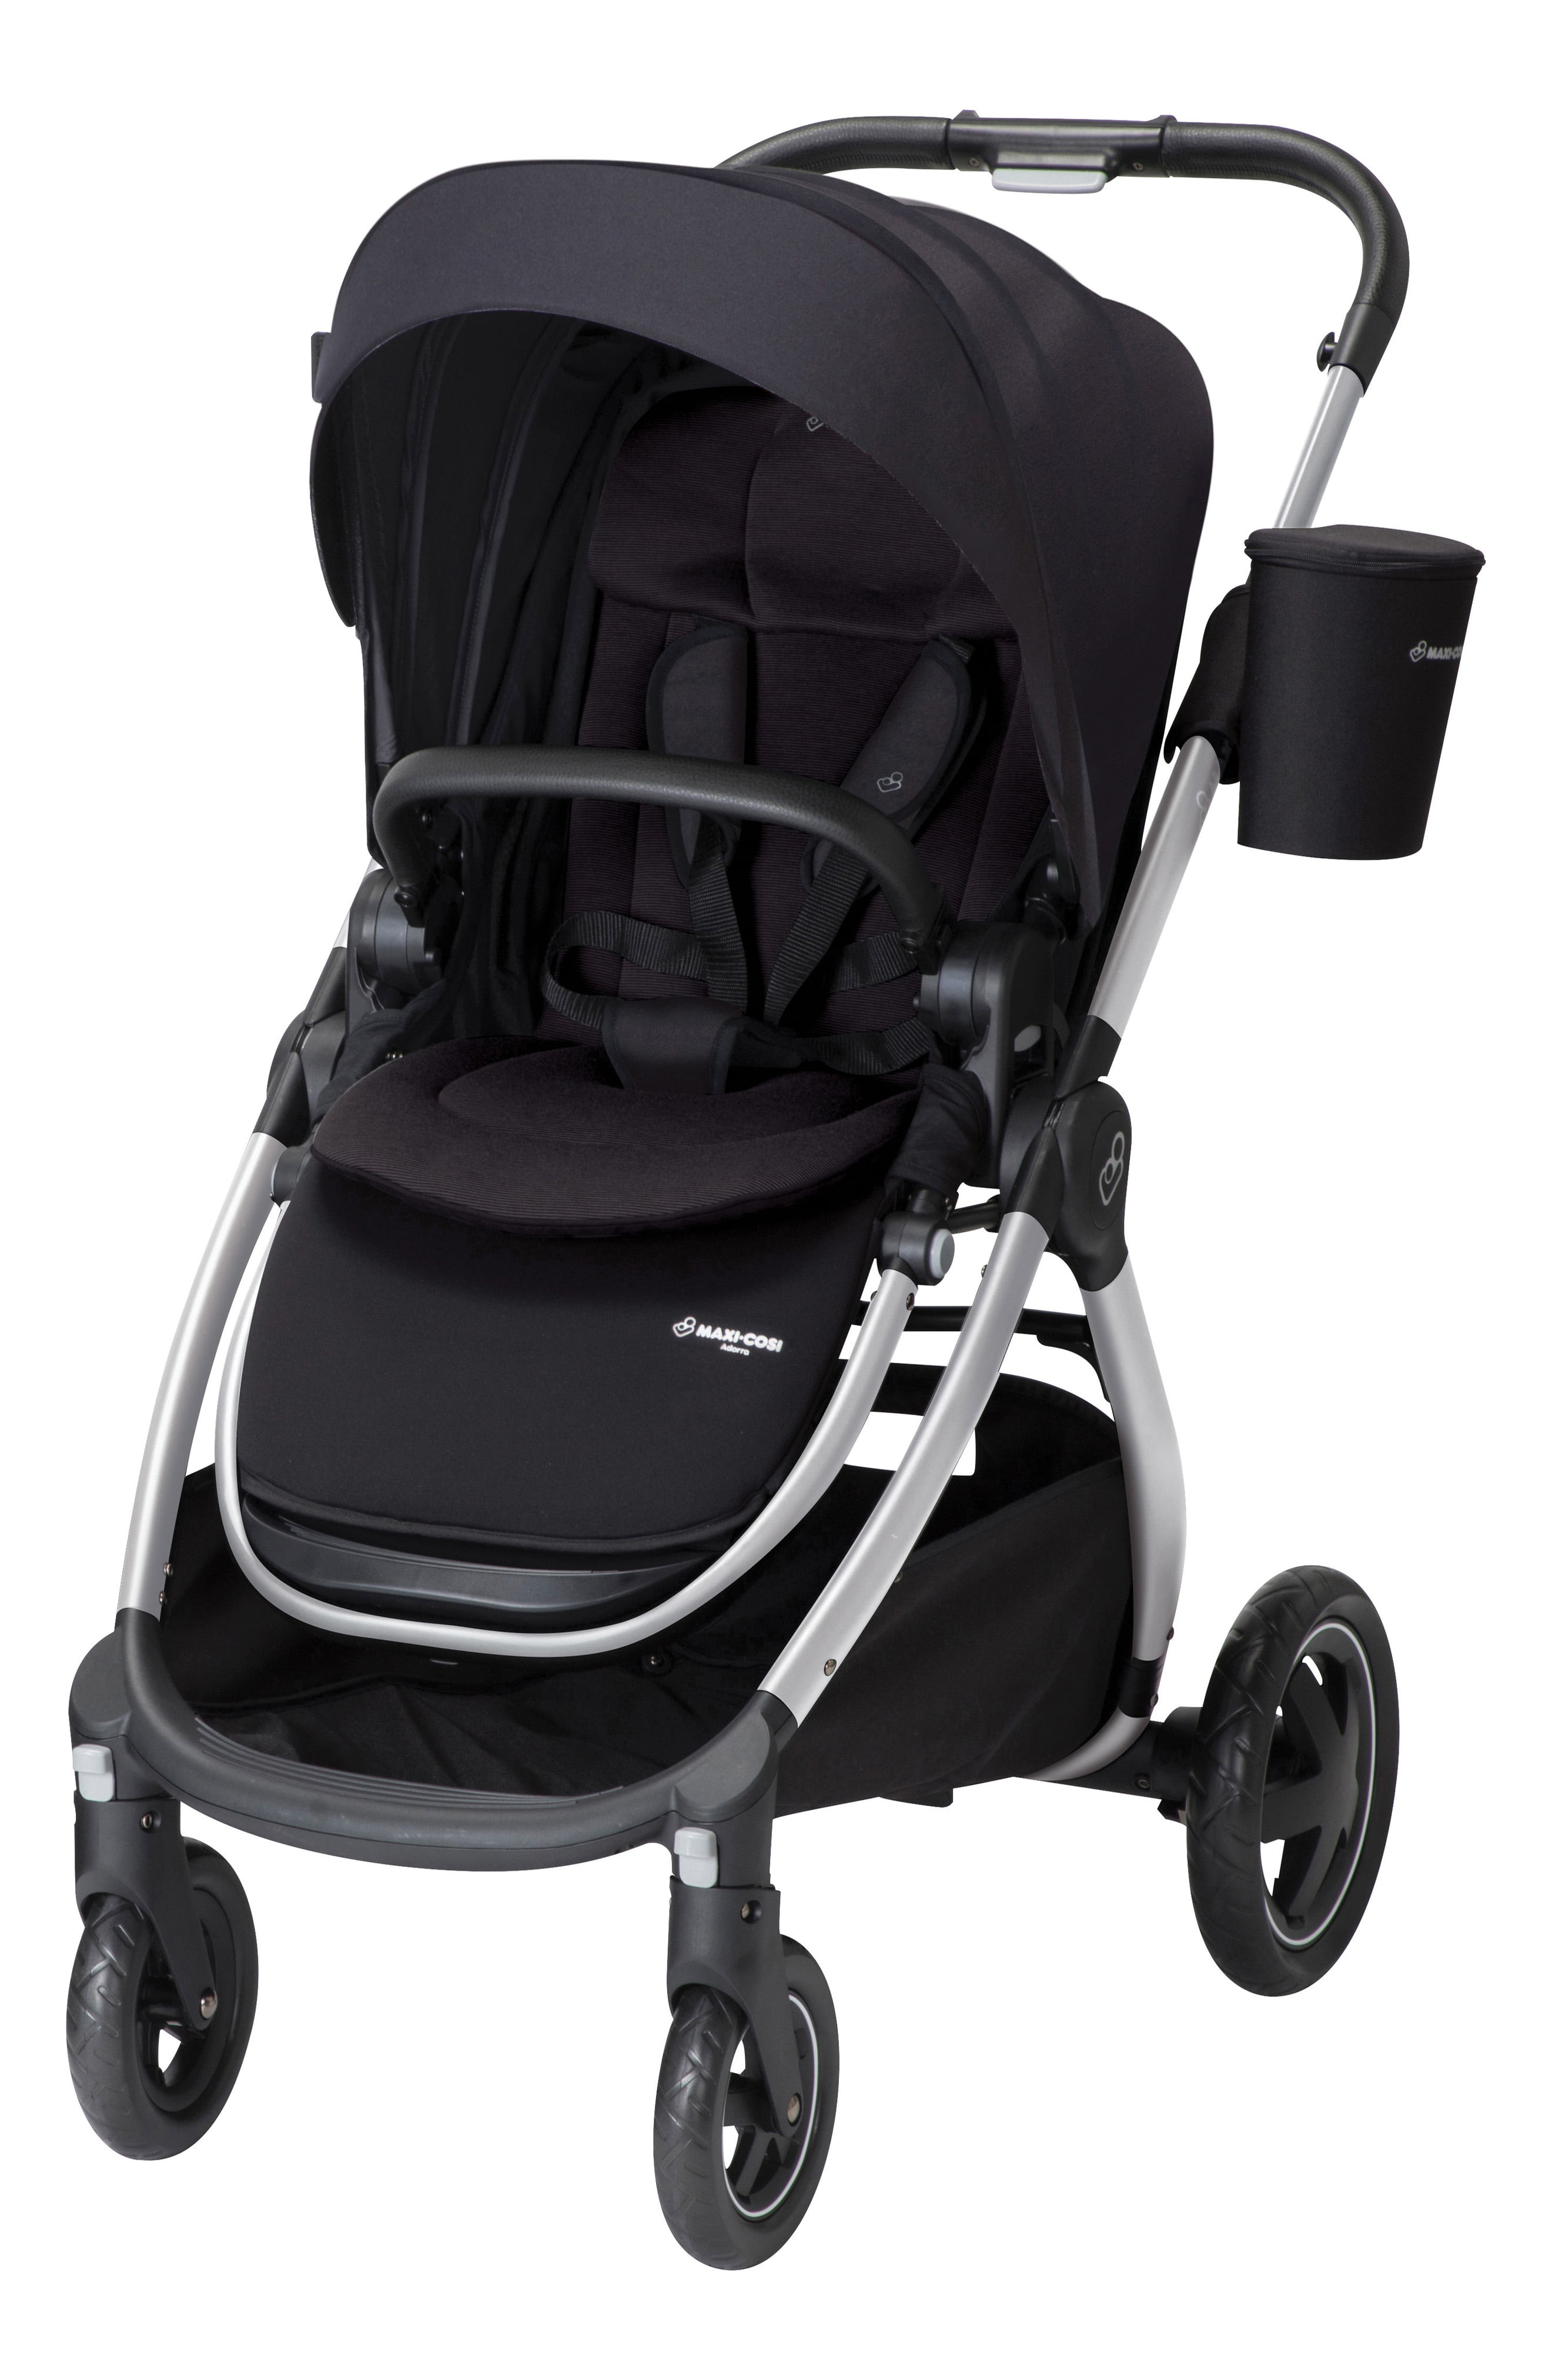 Nomad Black Maxi-Cosi Adorra Single Stroller